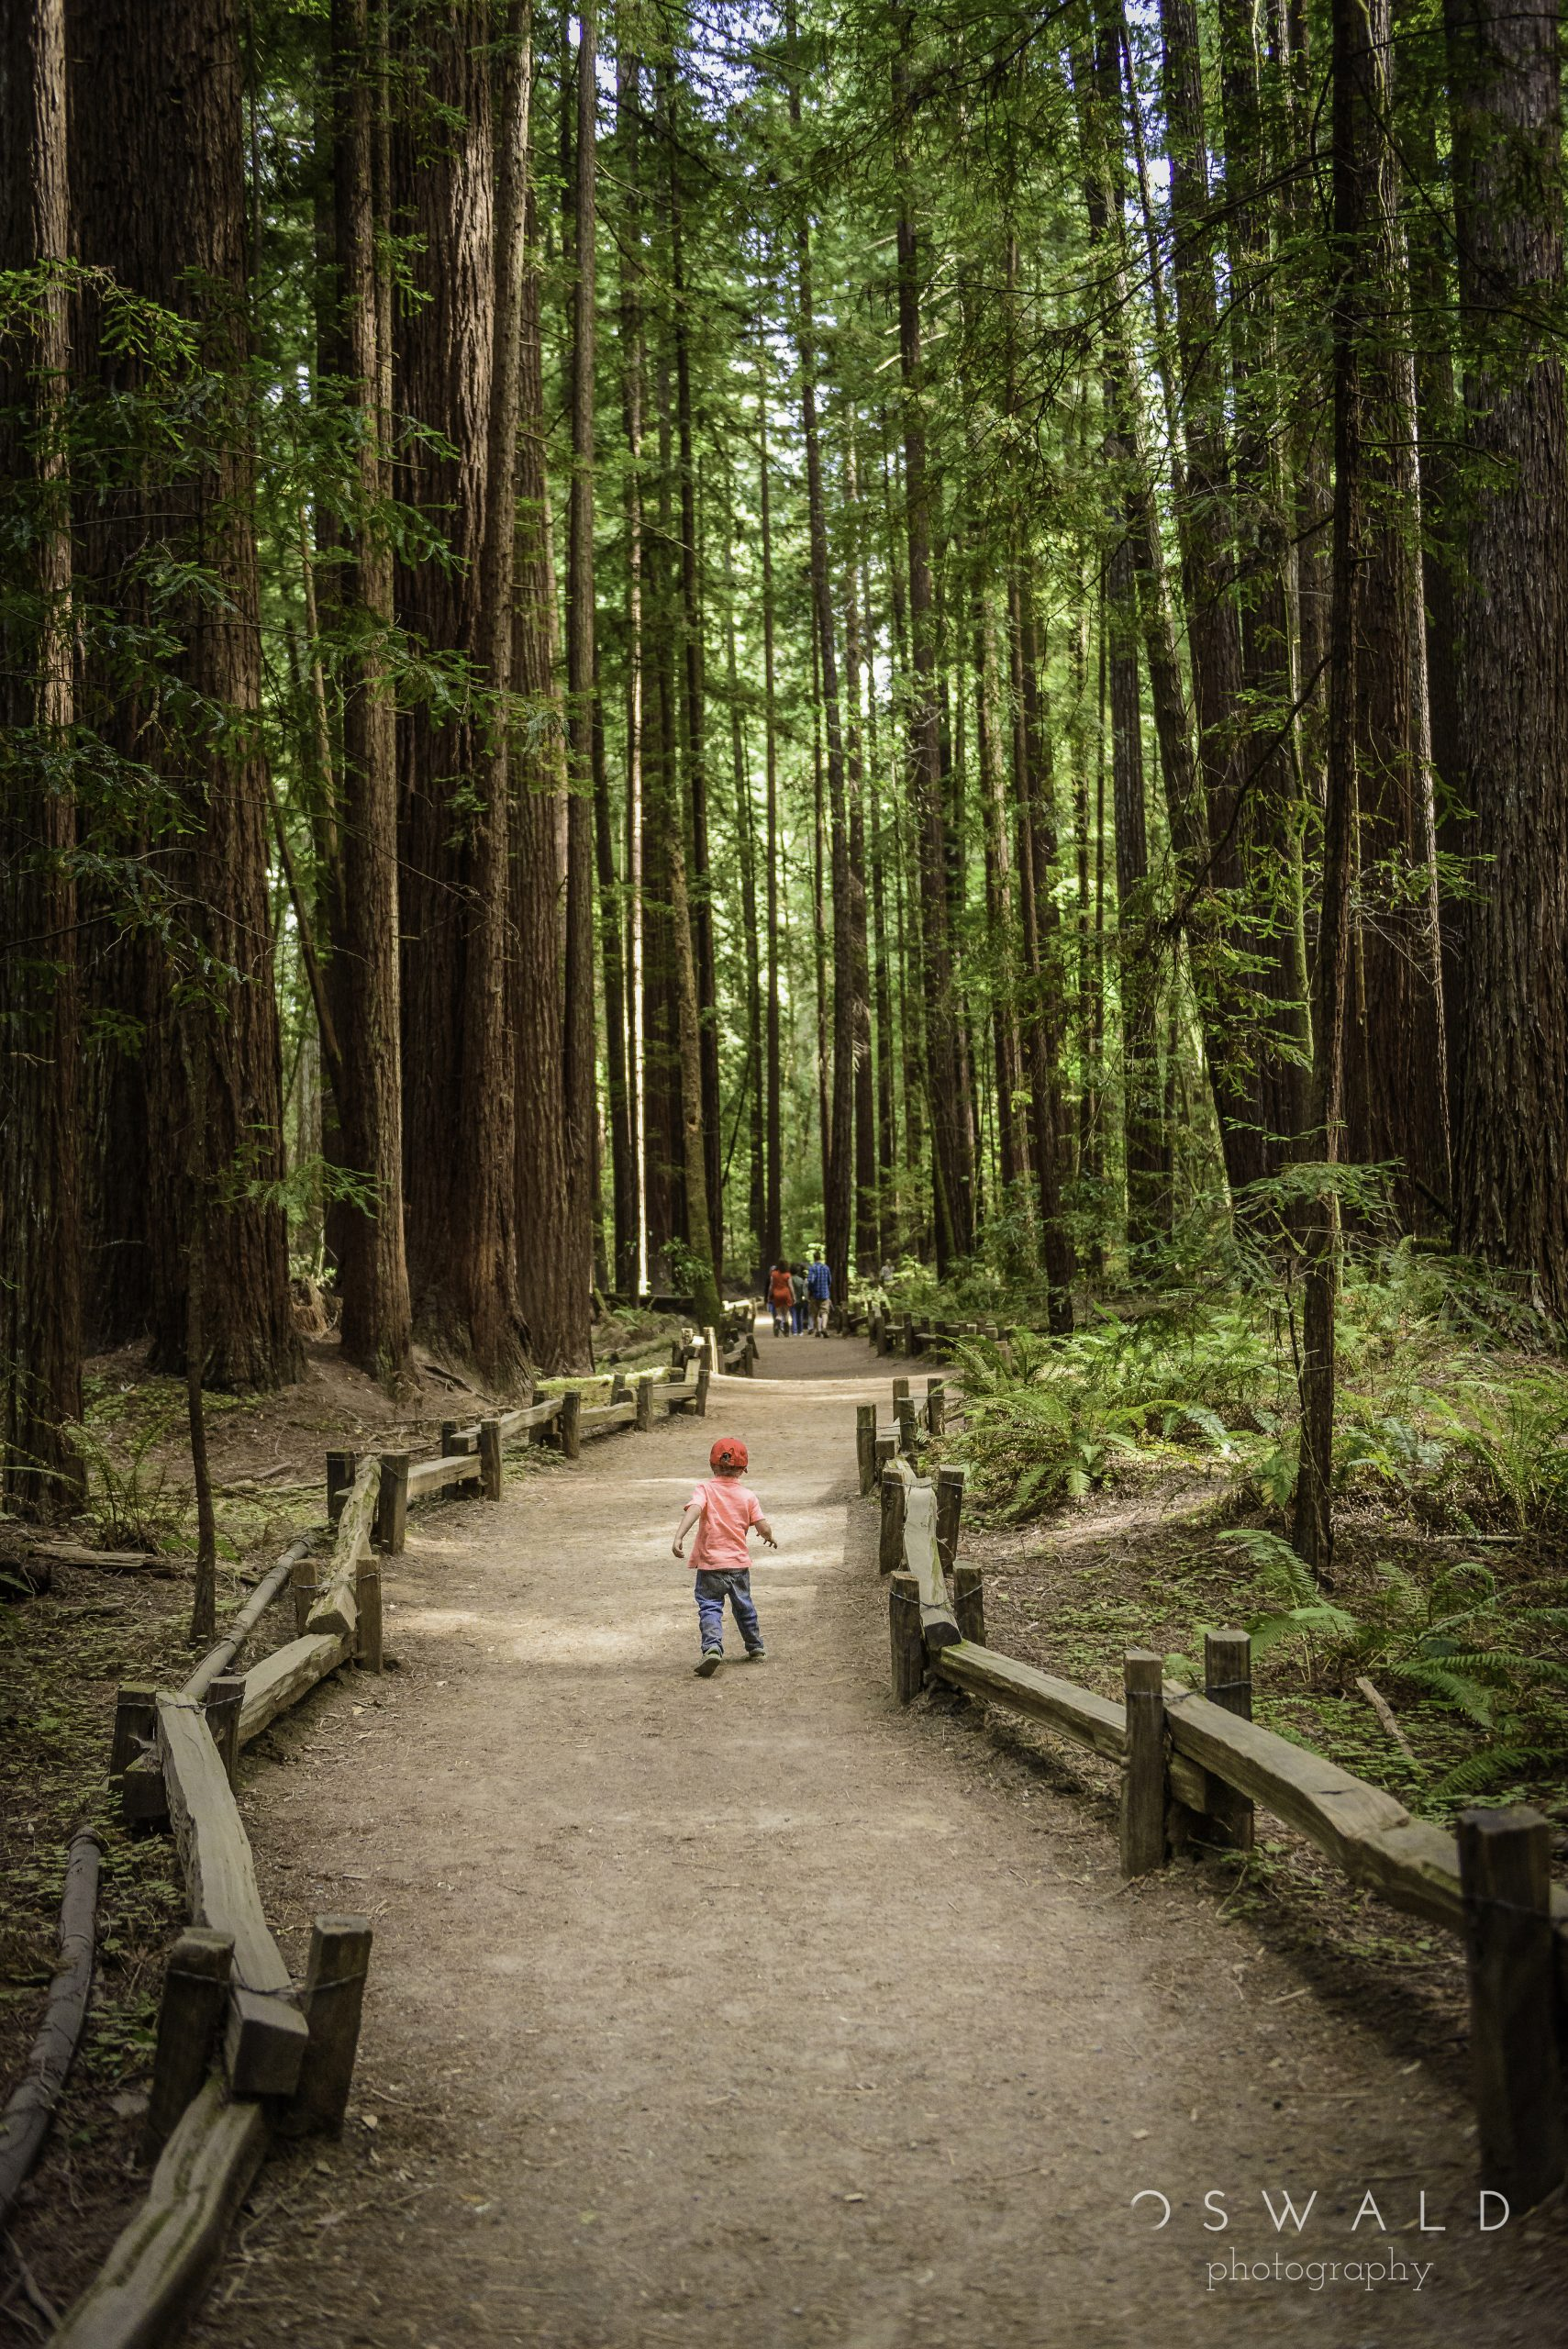 A photograph of a young boy walking through a redwood forest, far behind a group of adults that have passed on ahead.